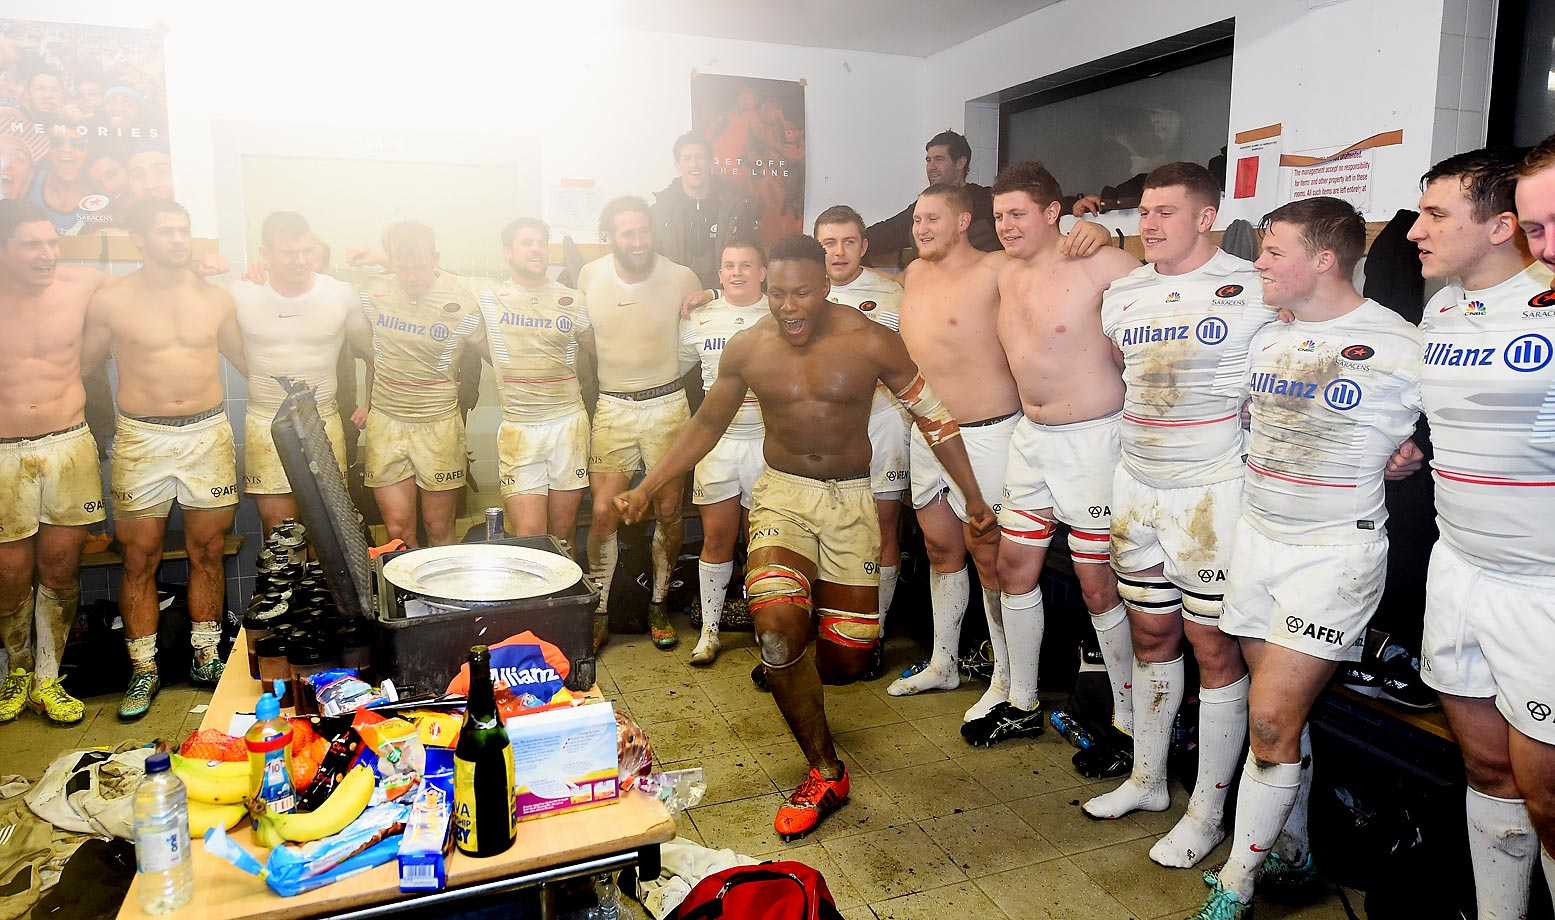 Mario Itoje of Saracens celebrates with his team after its victory against the Worcester Cavaliers.